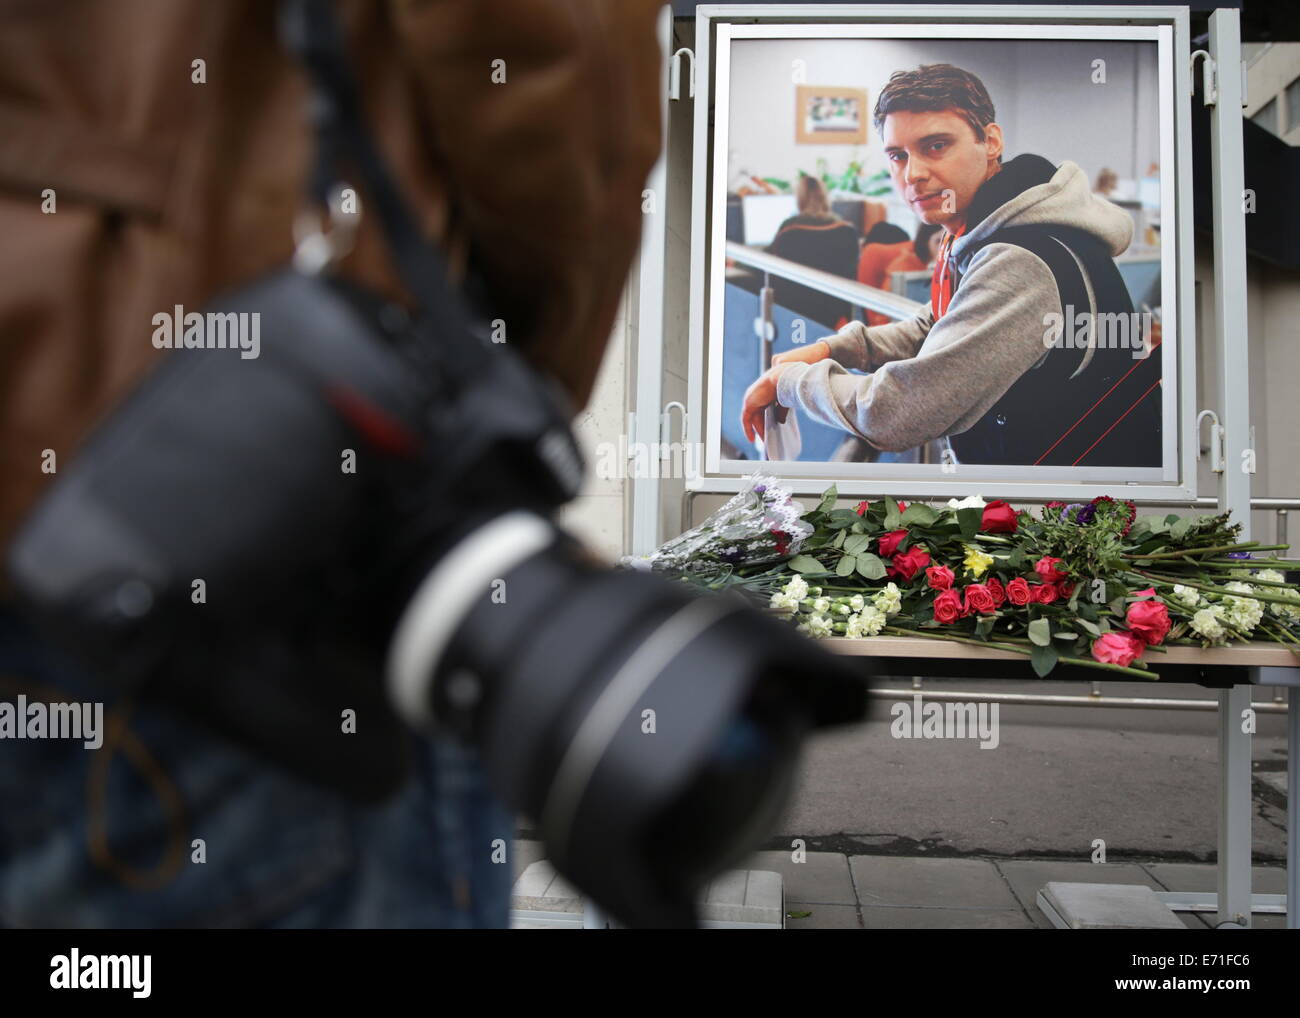 Moscow, Russia. 3rd Sep, 2014. A portrait of Rossiya Segodnya photo journalist Andrei Stenin outside the news agency's - Stock Image